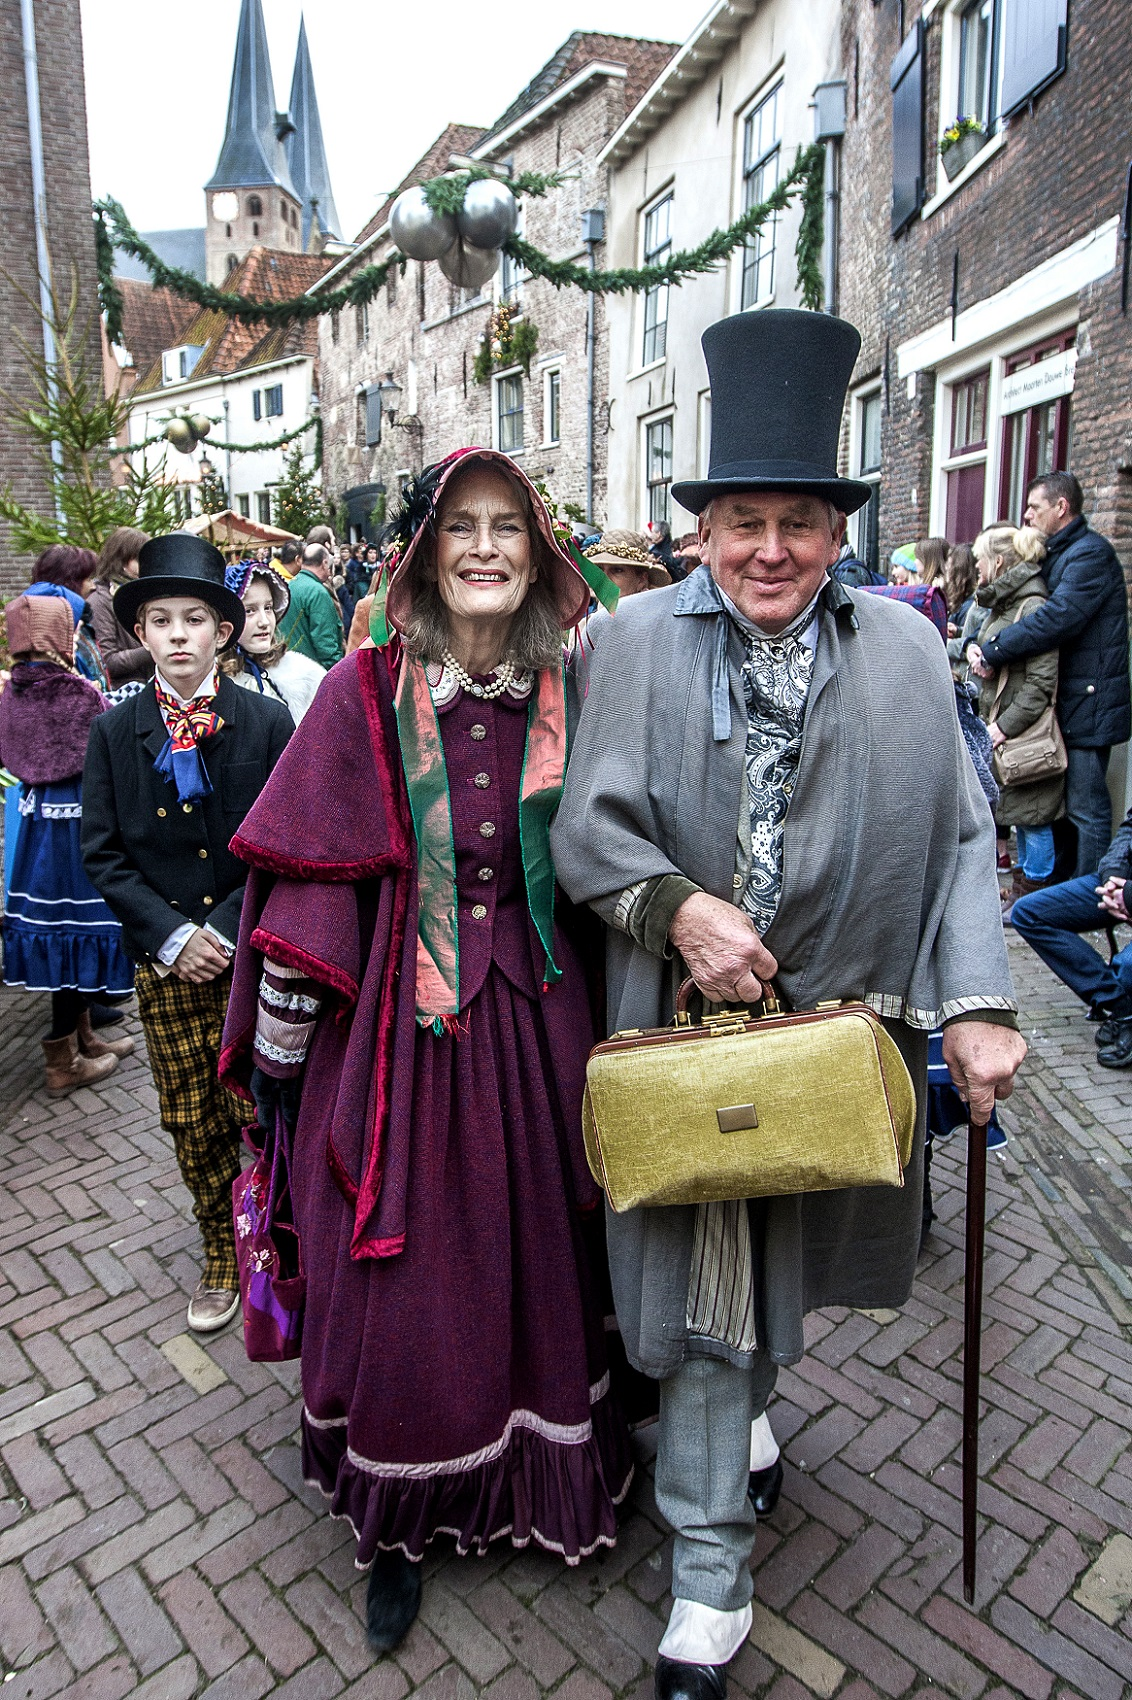 This photo has been taken from the official Dickens Festival webpage:  https://dickensfestijn.nl/.